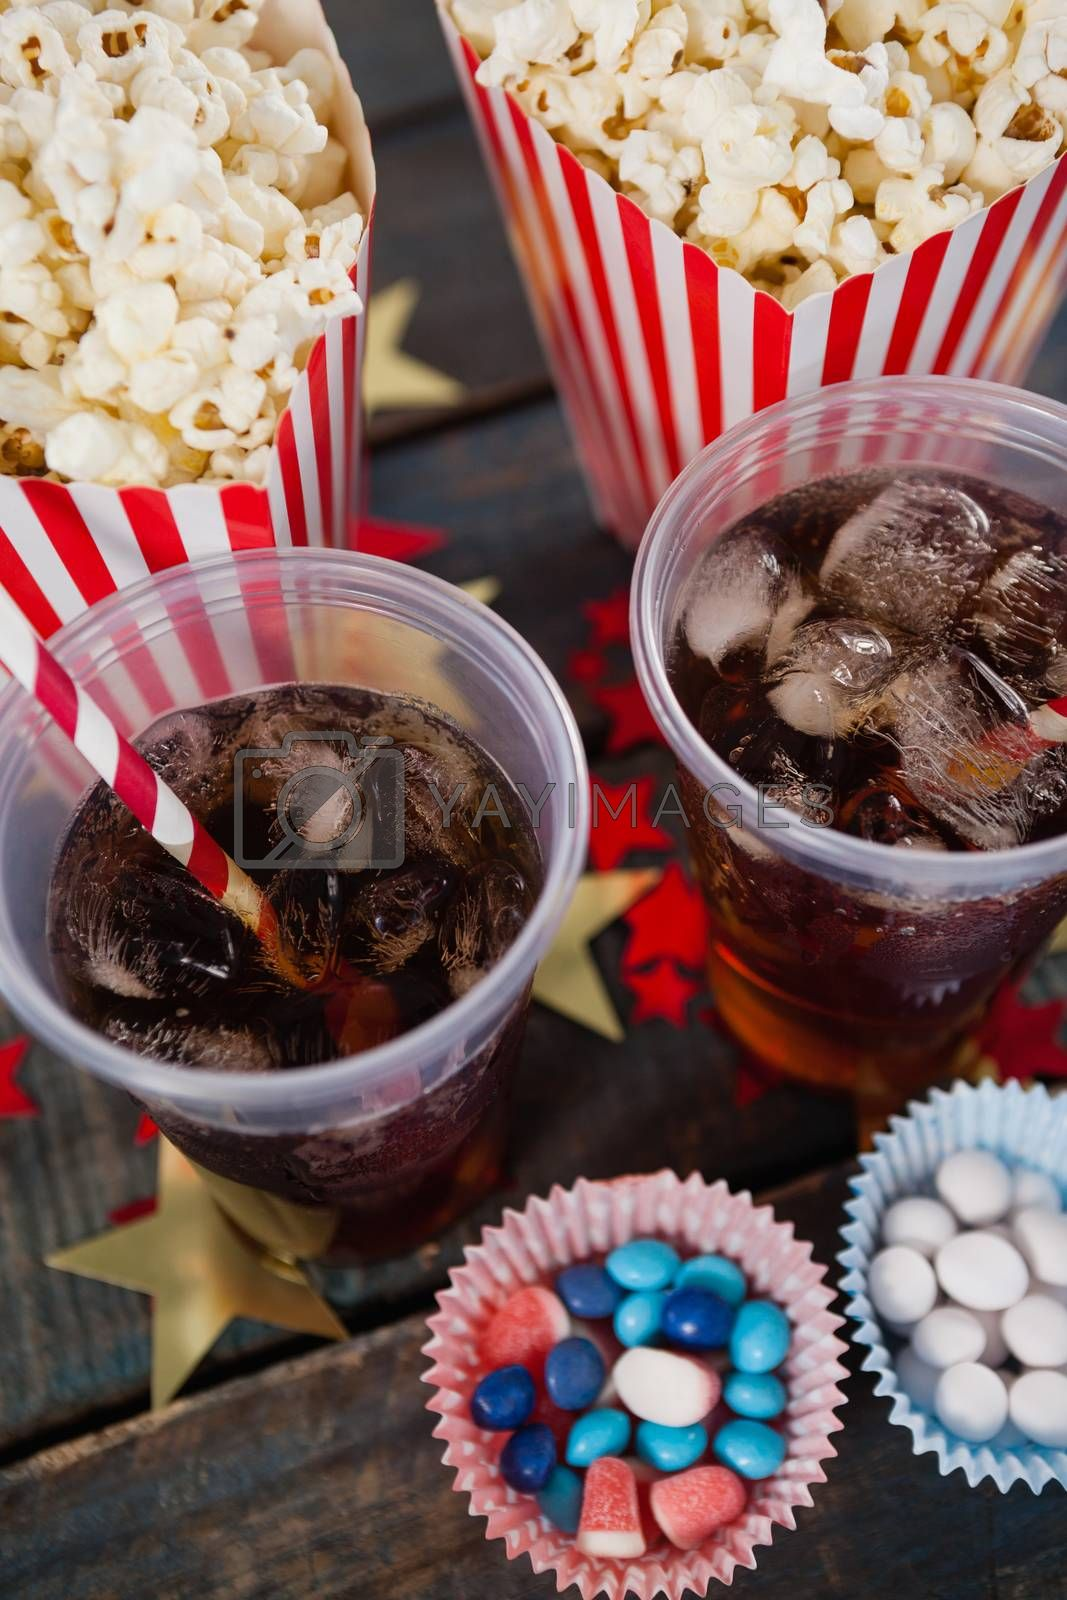 Royalty free image of Popcorn, confectionery and drink arranged on wooden table with 4th july theme by Wavebreakmedia